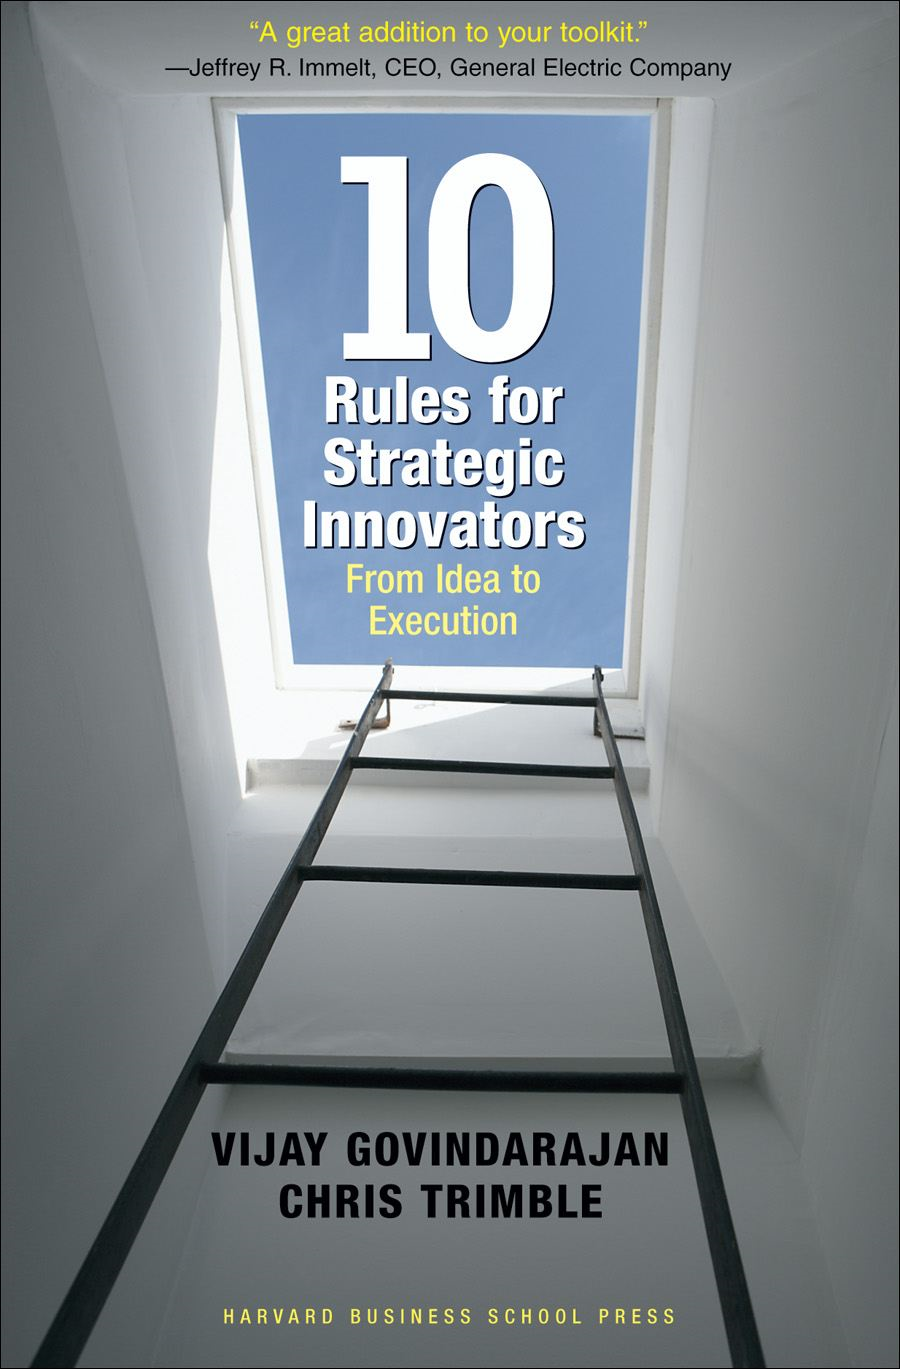 Ten Rules for Strategic Innovators